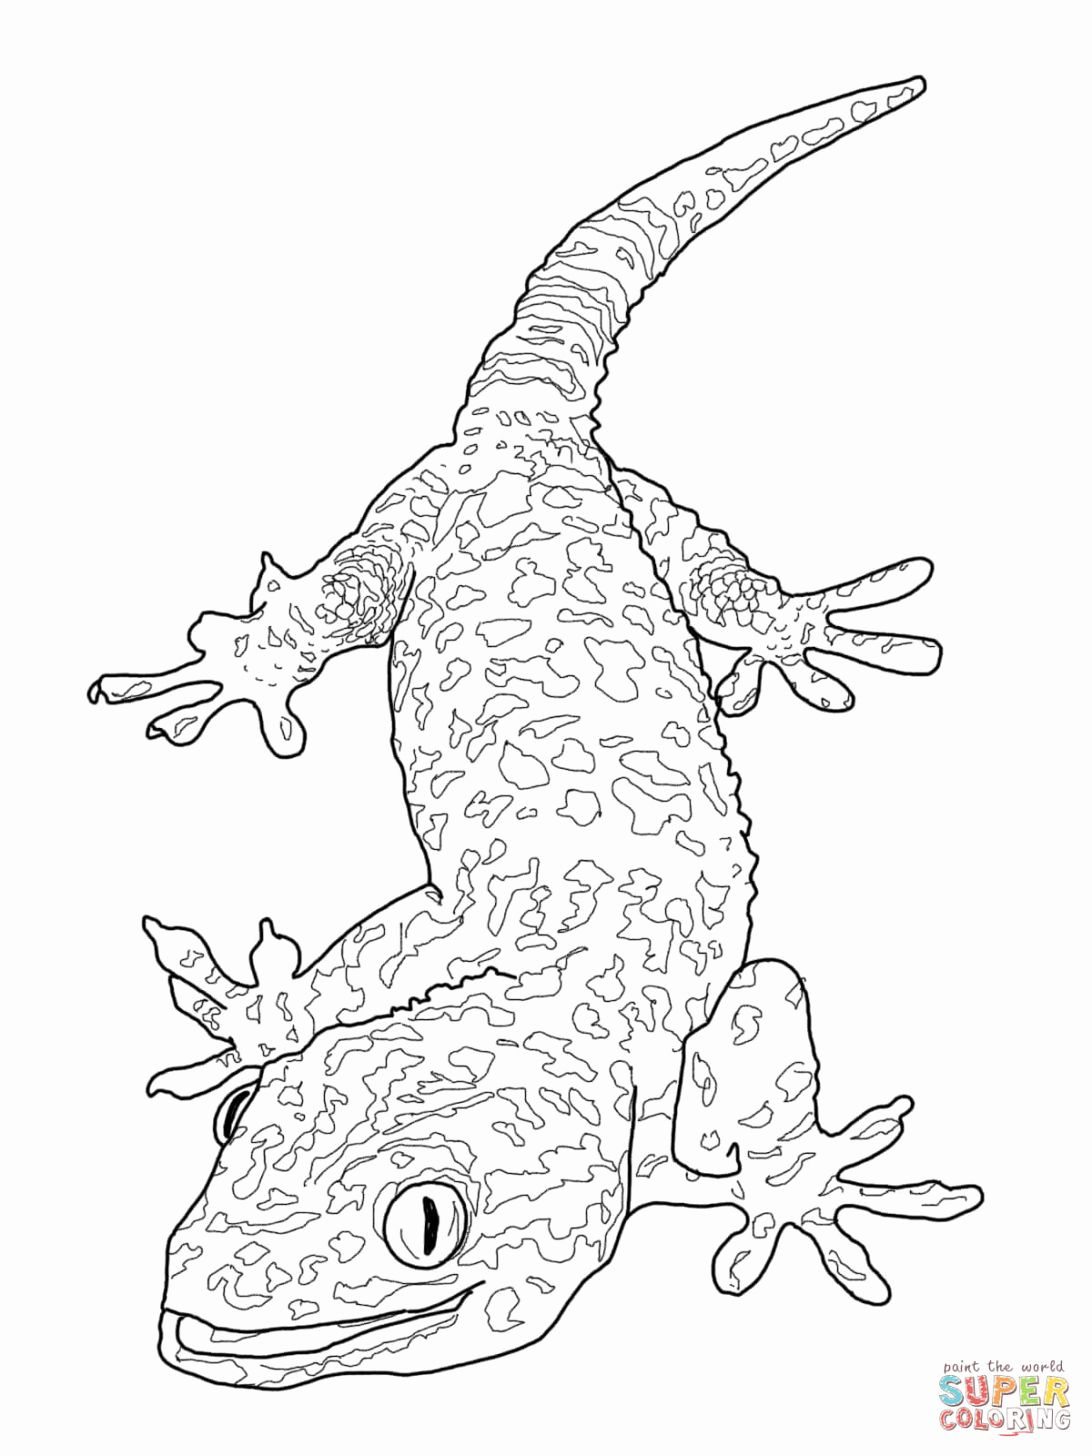 Bearded Dragon Coloring Pages For Kids Dragon Coloring Page Fish Coloring Page Cute Coloring Pages